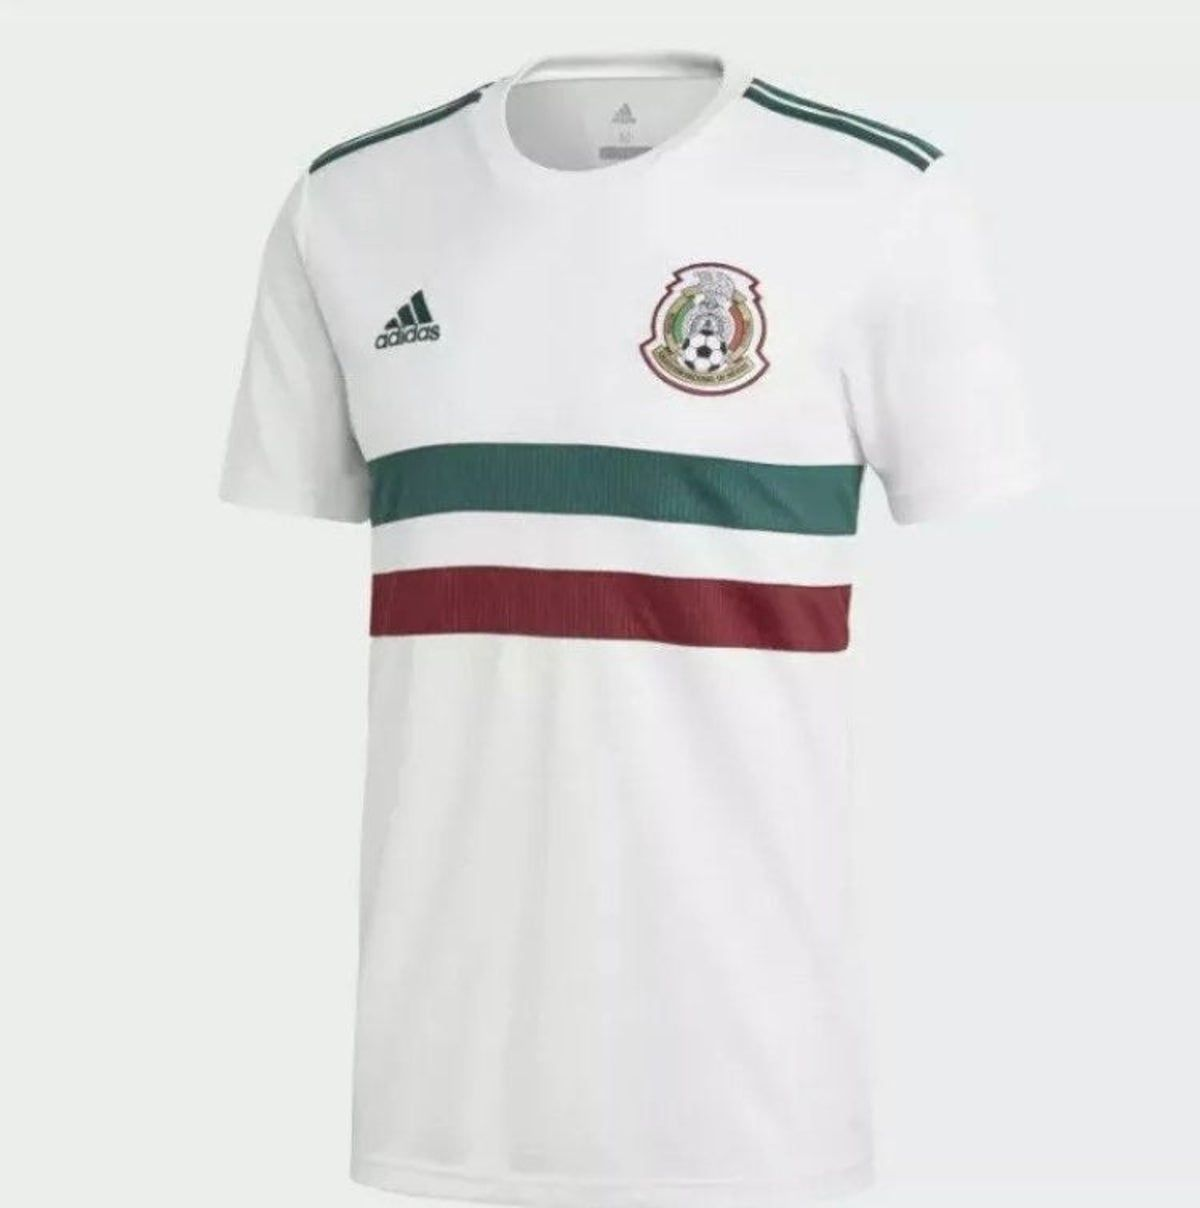 Adidas Mexico Soccer White Jersey Drifit In 2020 Mexico Away Jersey Mexico Soccer Jersey Soccer Jersey